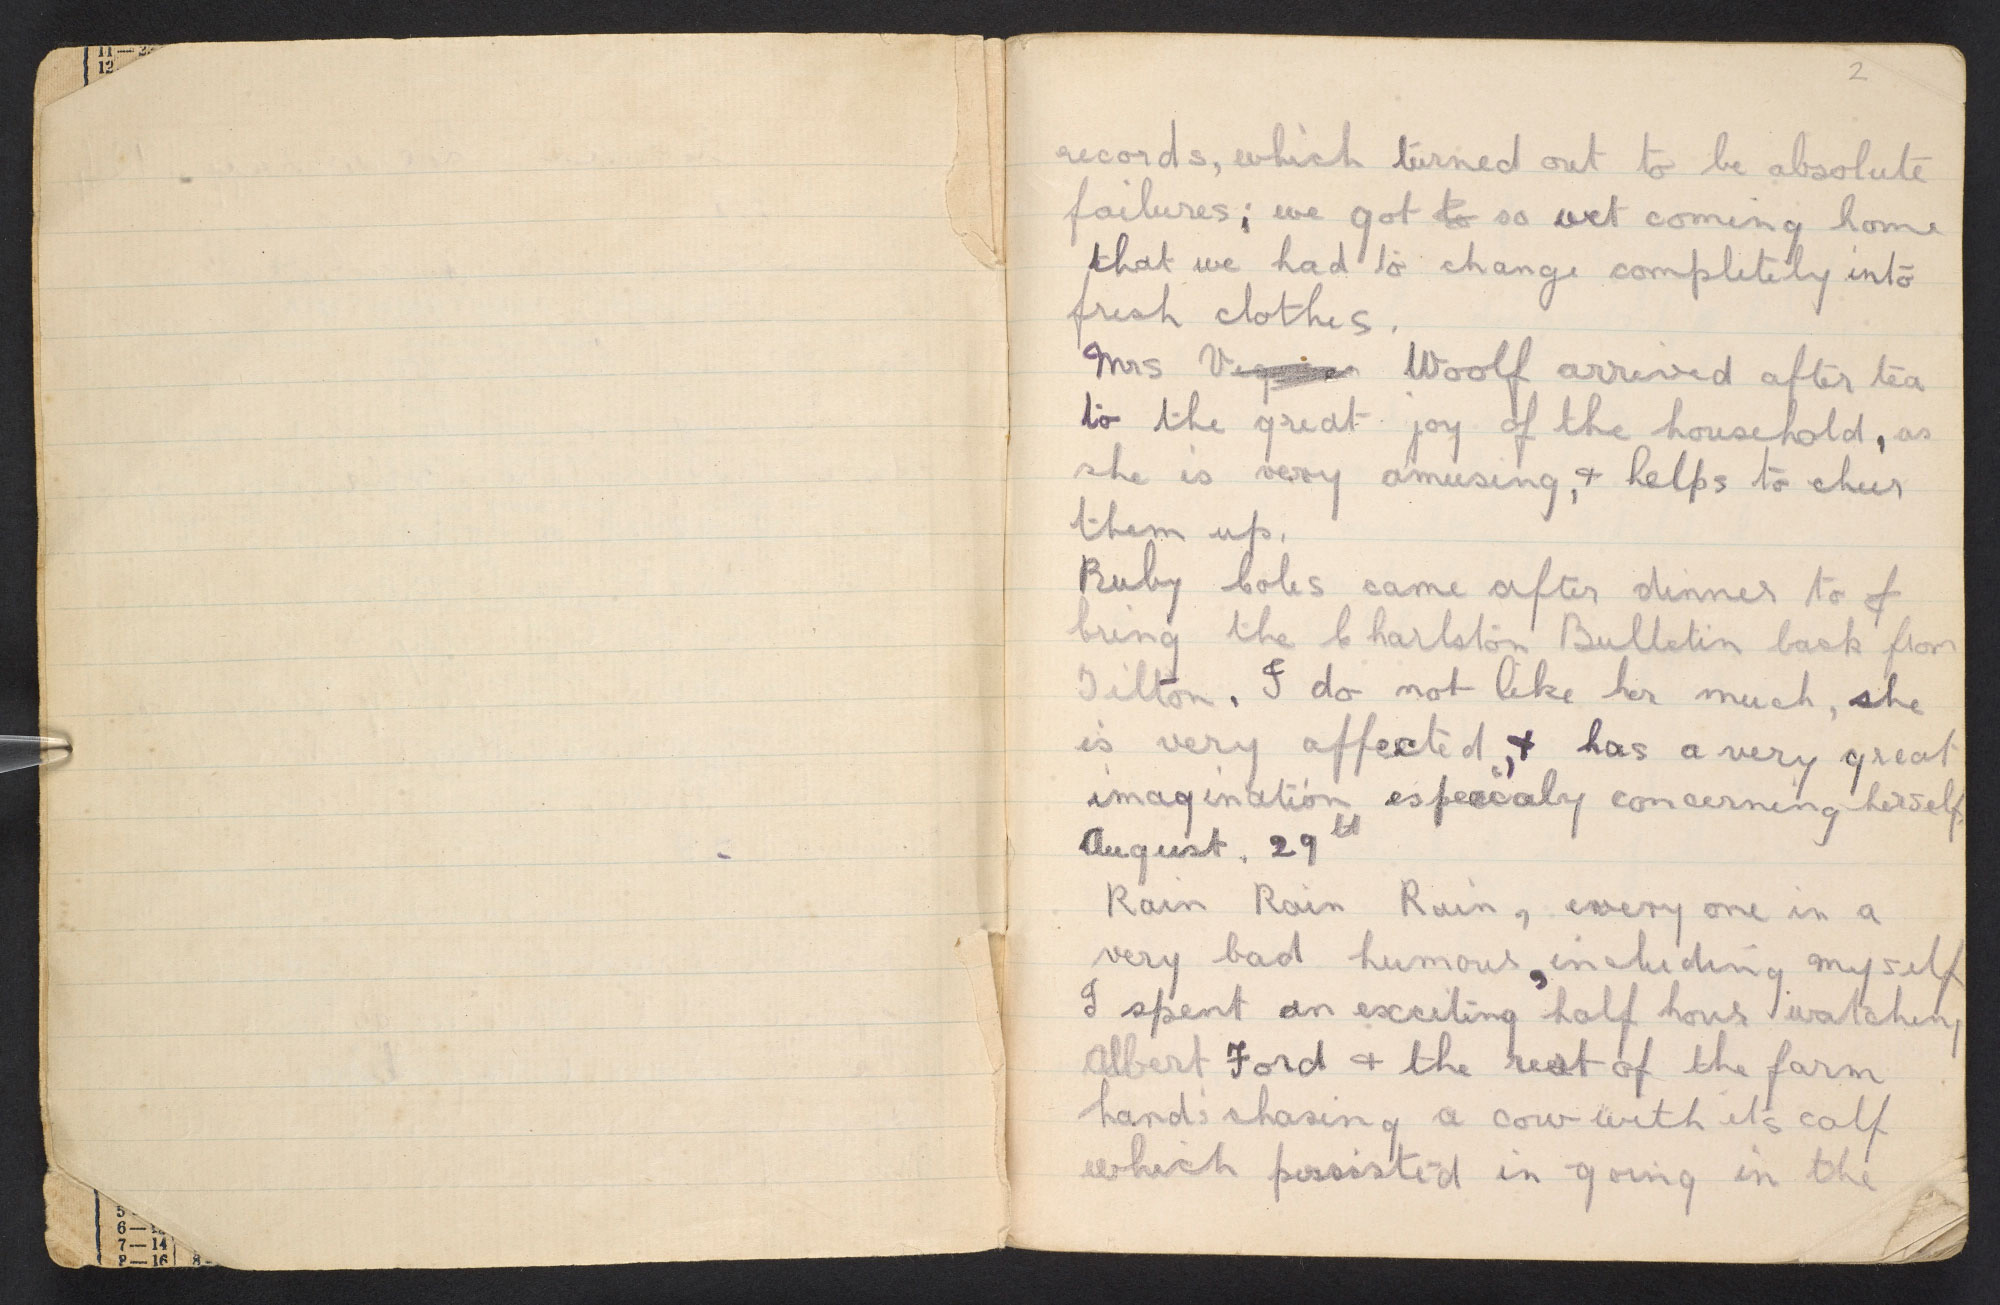 Grace Higgens' diary for 1924, with accounts of Virginia Woolf